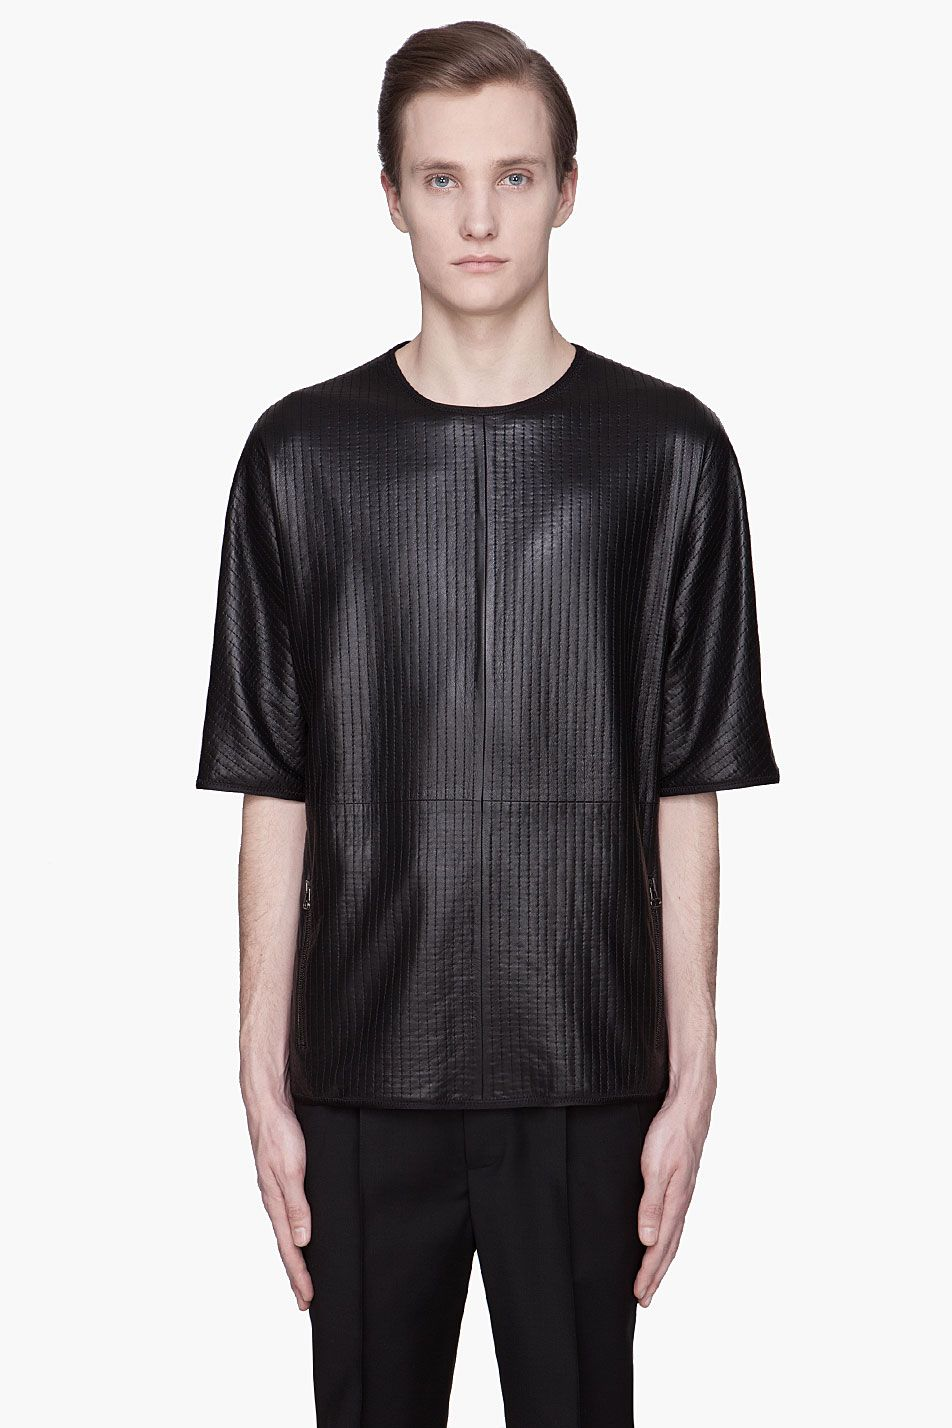 Black quilted t shirt - Lanvin Black Quilted Lambskin T Shirt